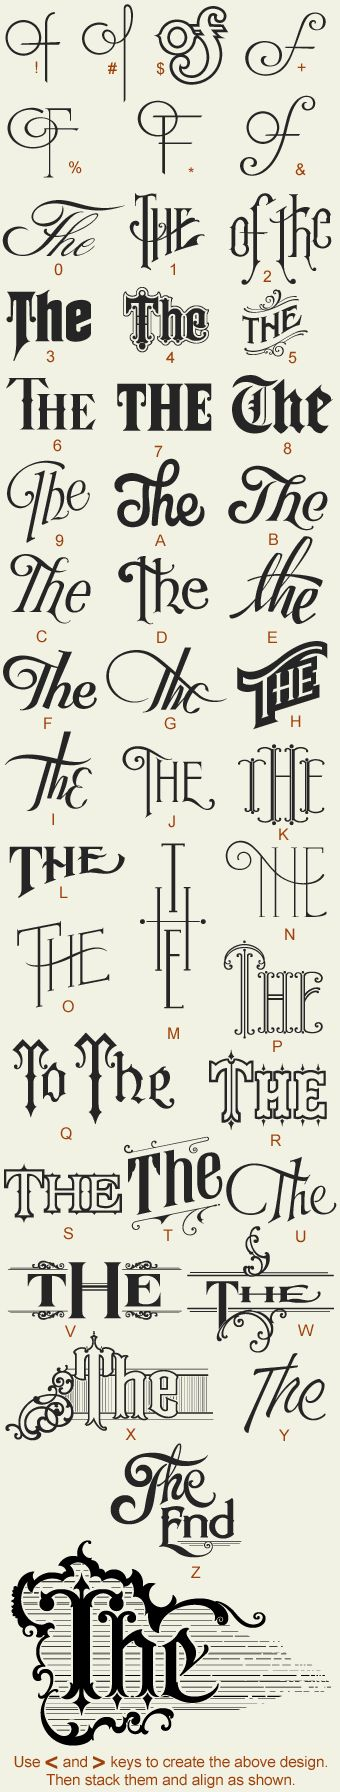 "LHF Noel's Thes by Noel Weber Dave Parr Features 35 variations of the word ""The"" (and a few ""of""s thrown in for good measure). Each letter generates a different design. Download printable keyguide here. Add To Cart $52.00"